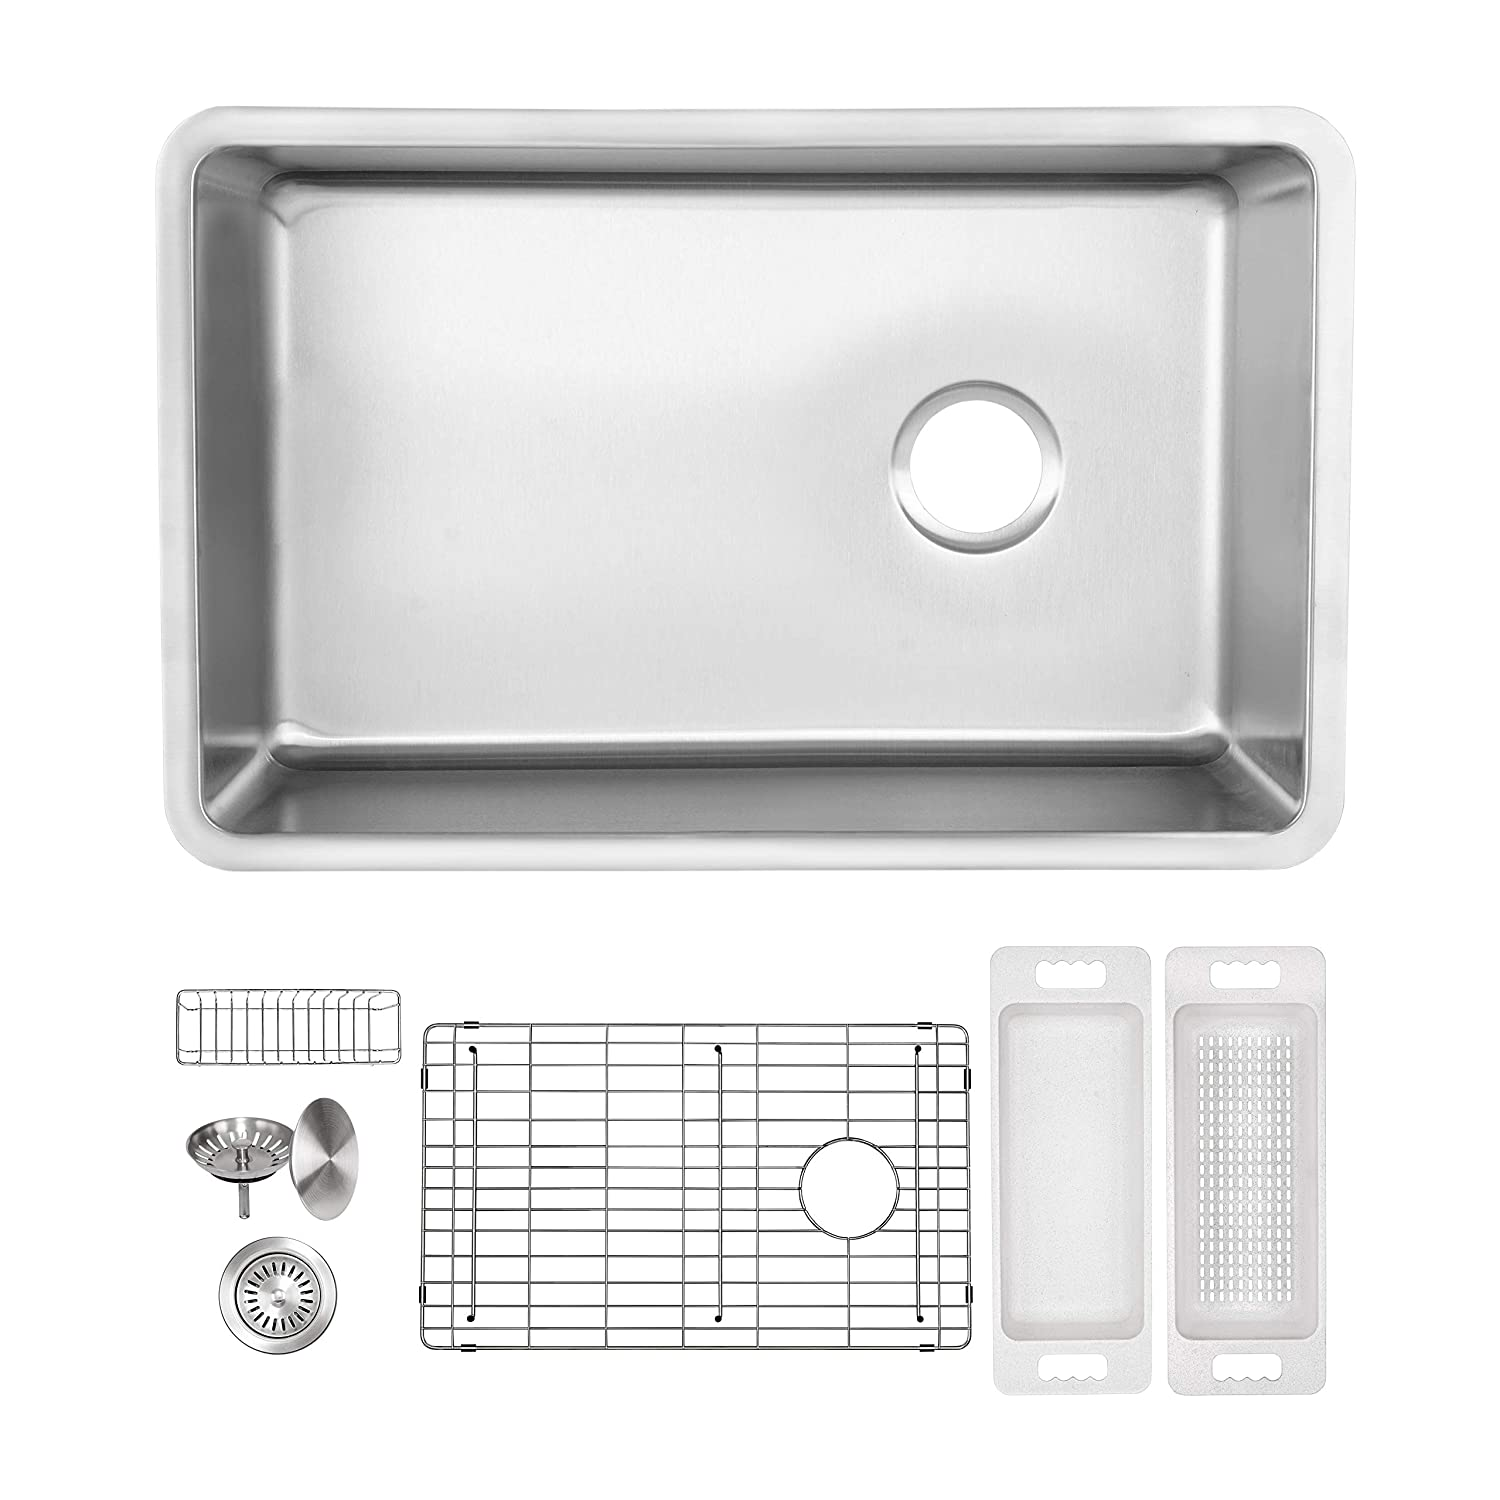 ZUHNE Offset Drain 24 x 19 Inch Reversible Single Bowl Under Mount 16 Gauge Stainless Steel Kitchen Sink W. Grate Protector, Caddy, Colander Set, Drain Strainer and Mounting Clips, Fits 27 Cabinet